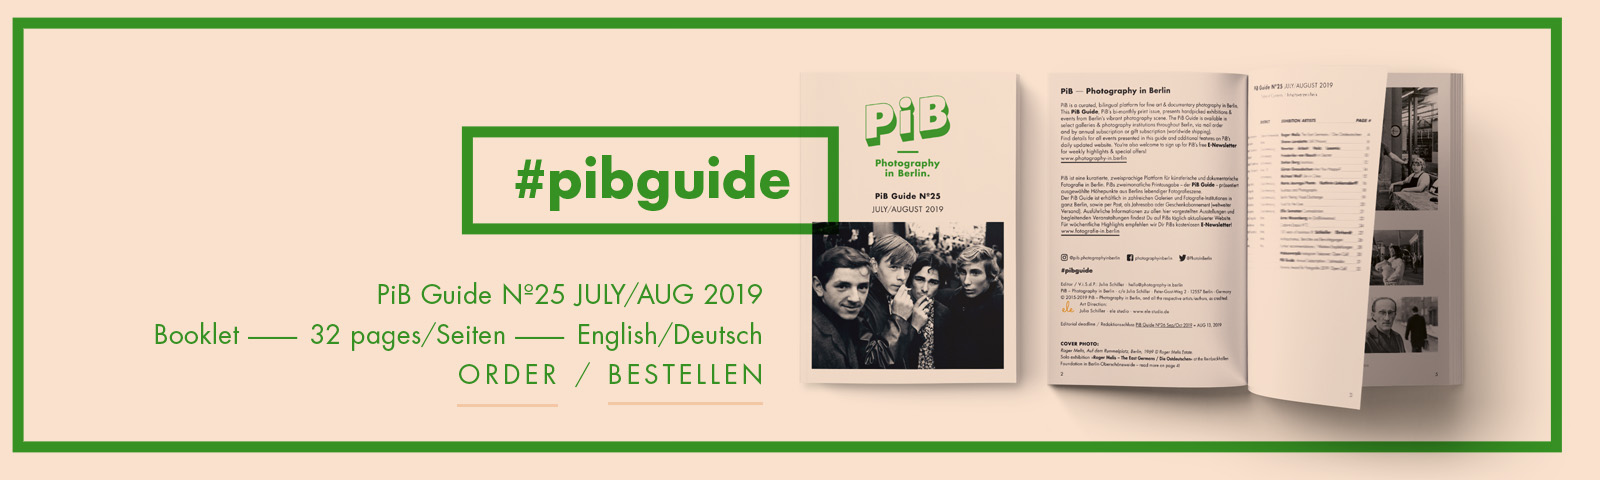 The PiB Guide Nº25 JULY/AUG 2019 © PiB – Photography In Berlin. #pibguide. COVER PHOTO: COVER PHOTO: Roger Melis, Auf Dem Rummelplatz, Berlin, 1969 © Roger Melis Estate. Retrospective »Roger Melis – The East Germans / Die Ostdeutschen« At The Reinbeckhallen Foundation In Berlin-Oberschöneweide.